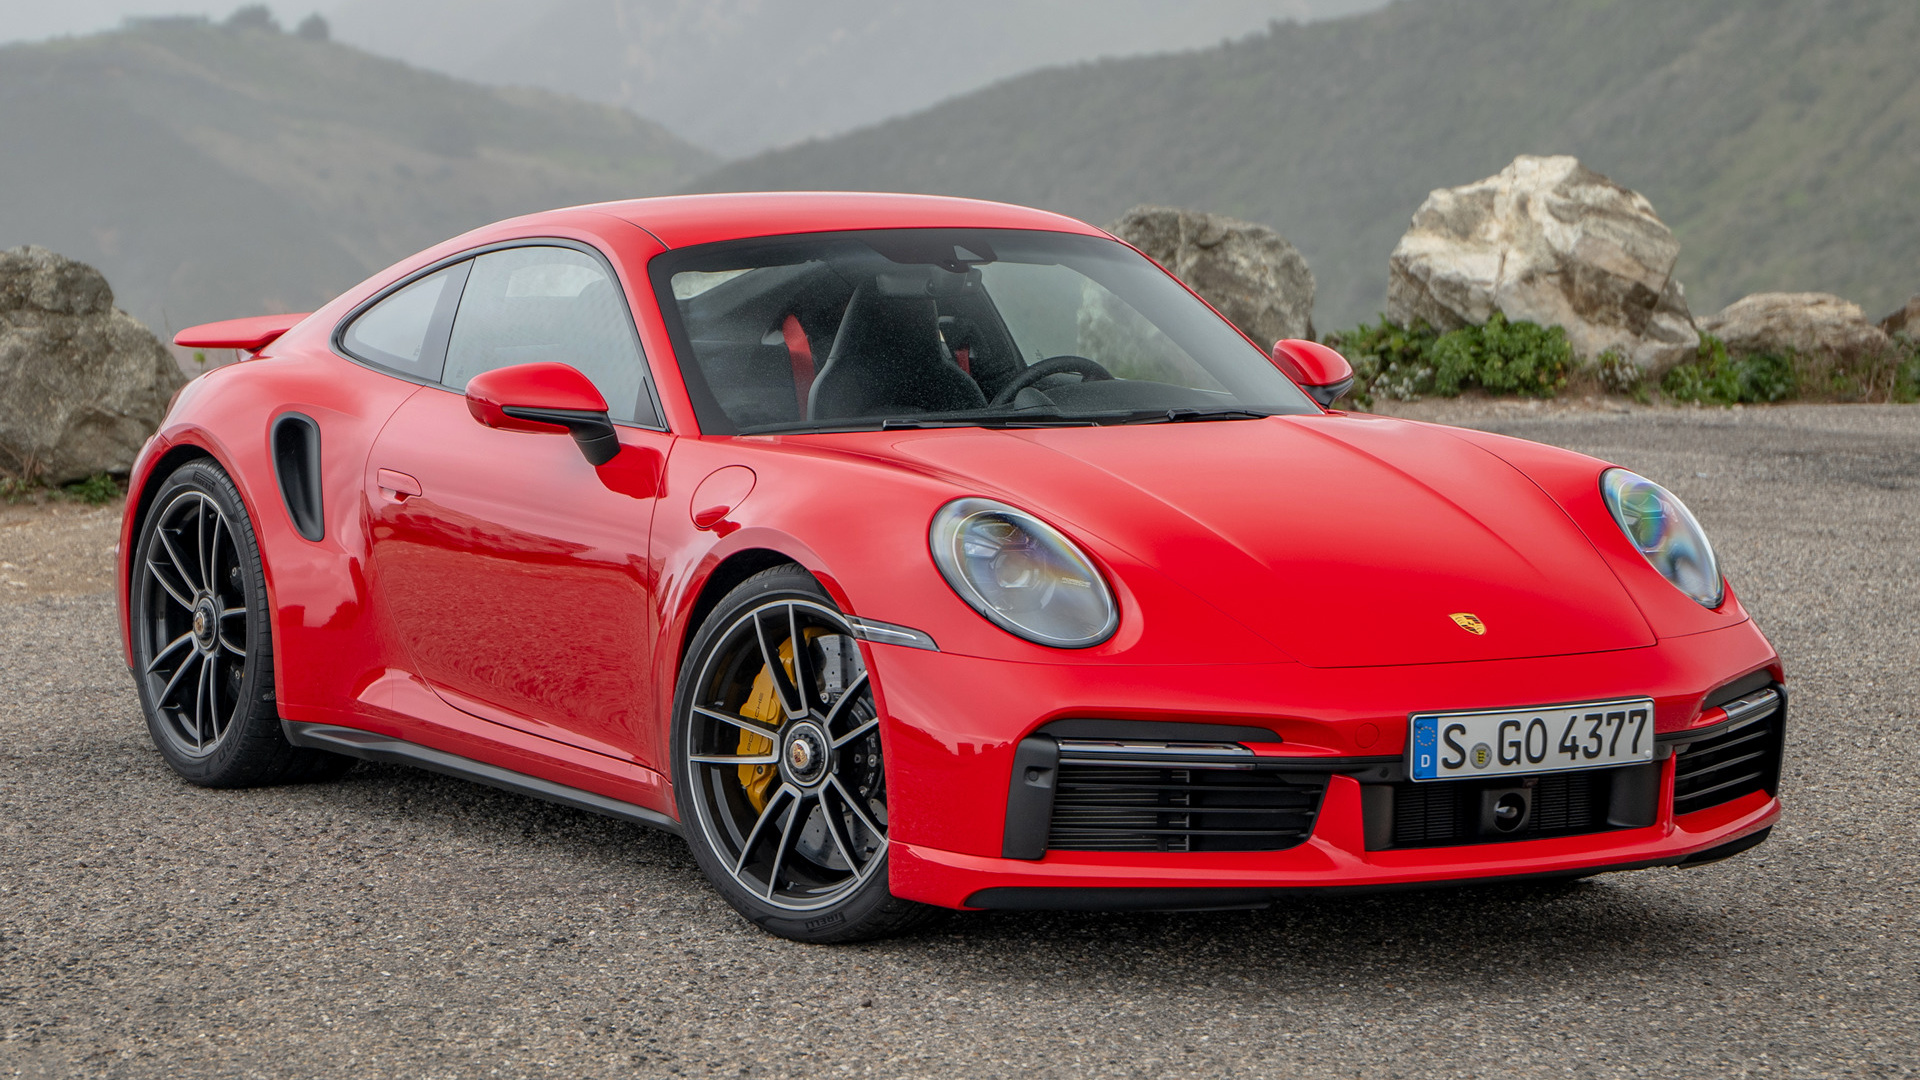 2020 Porsche 911 Turbo S   Wallpapers and HD Images Car Pixel 1920x1080